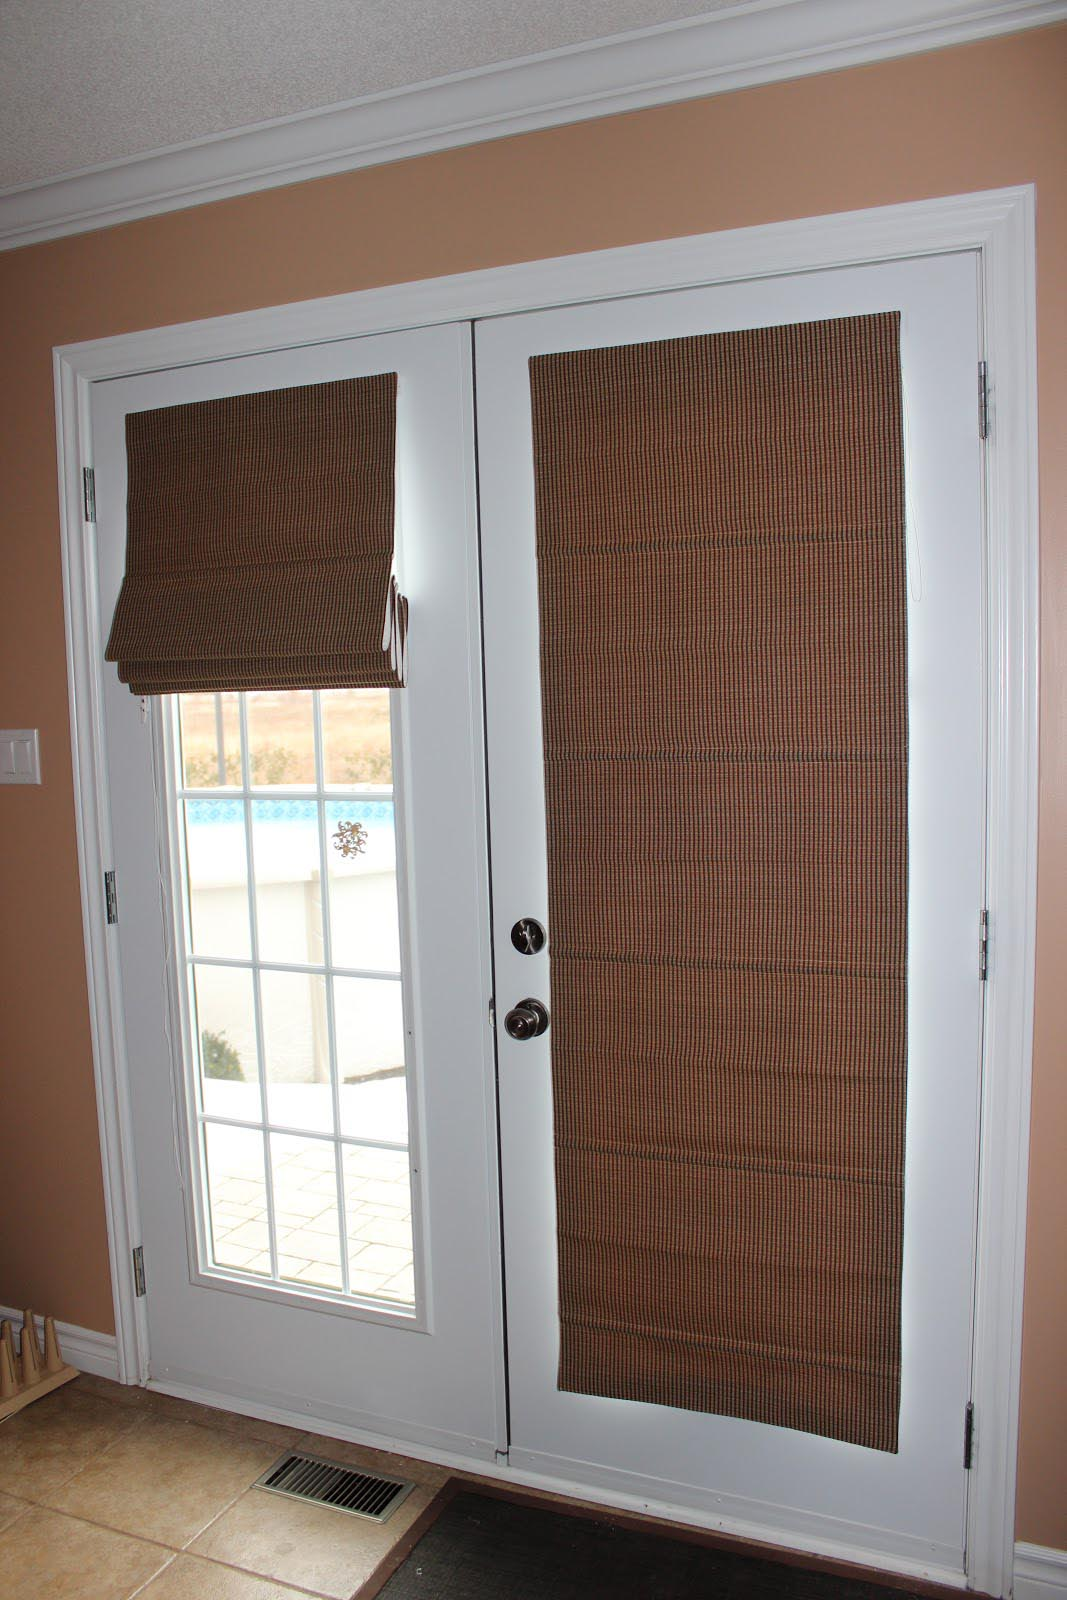 Door window blinds functionality window treatments for Window blinds with designs